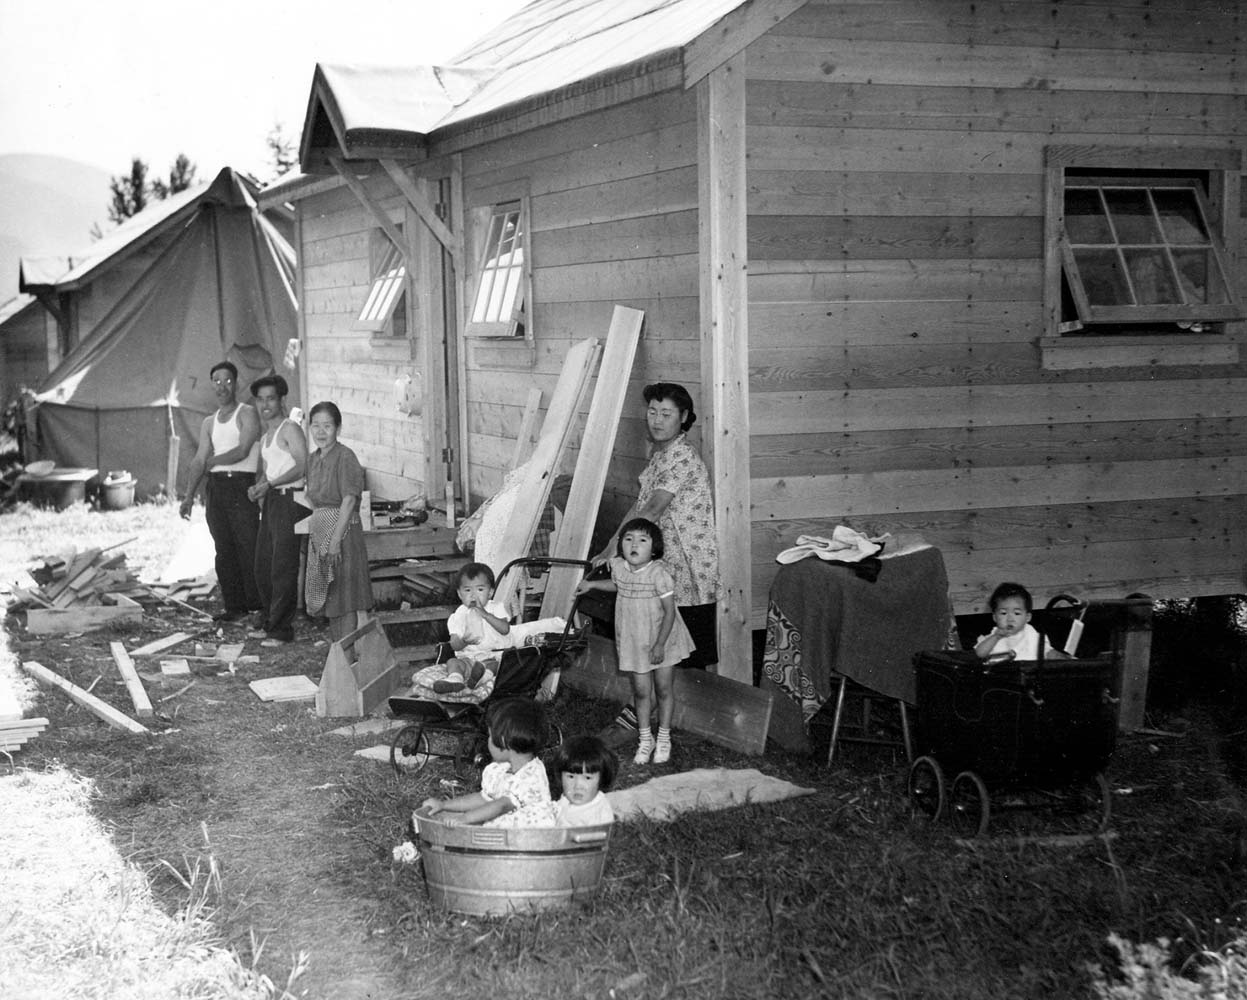 comparison concentration camps japanese internment The detention centers housing immigrant children separated from their  from  the japanese internment camps of world war ii to the gulags of the soviet   user the anome disagreed, saying no comparison was being made.